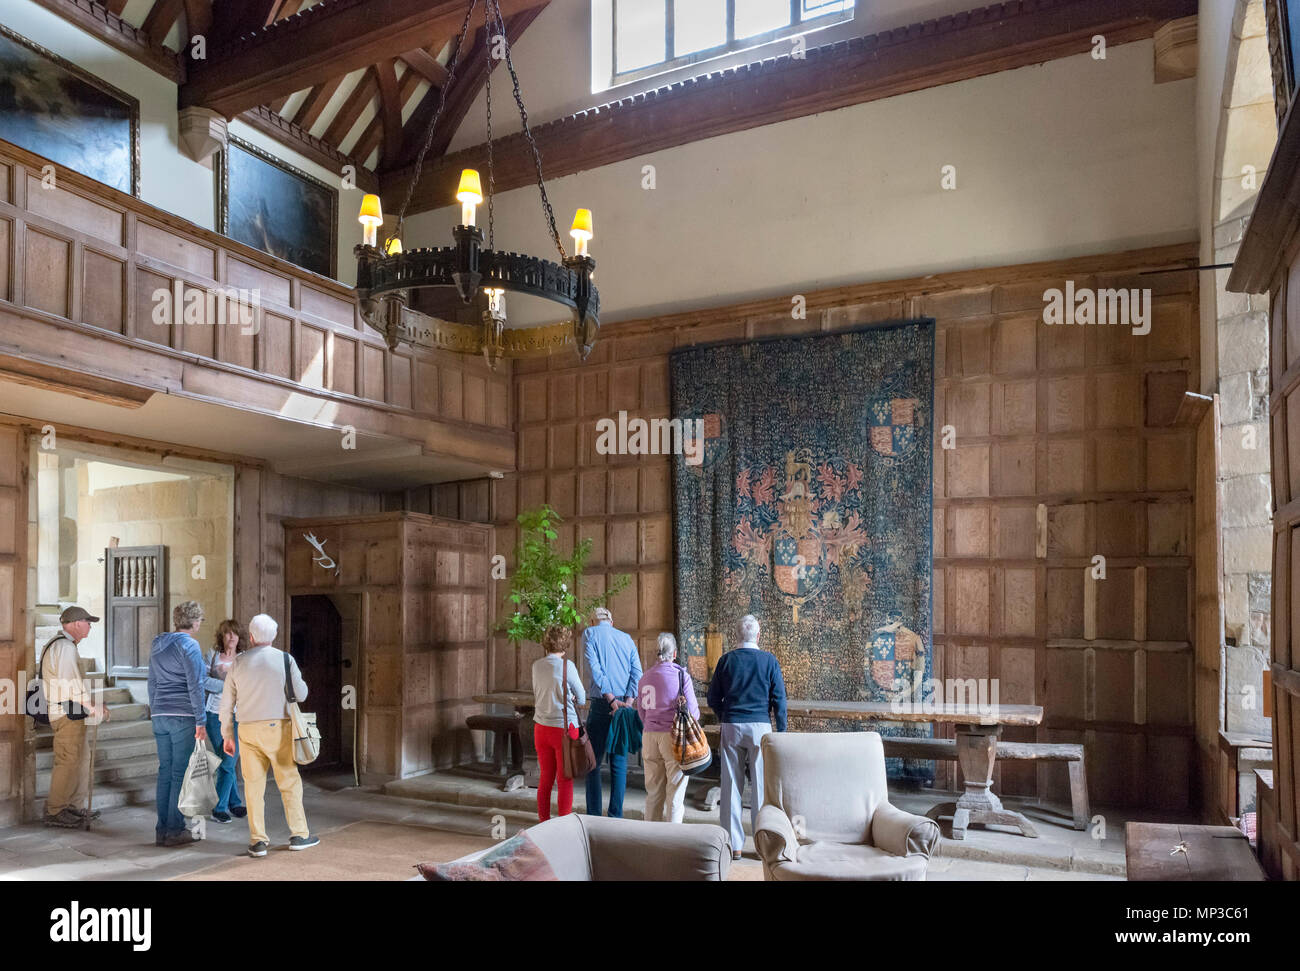 Visitors in the Hall at Haddon Hall, near Bakewell, Derbyshire, England, UK - Stock Image